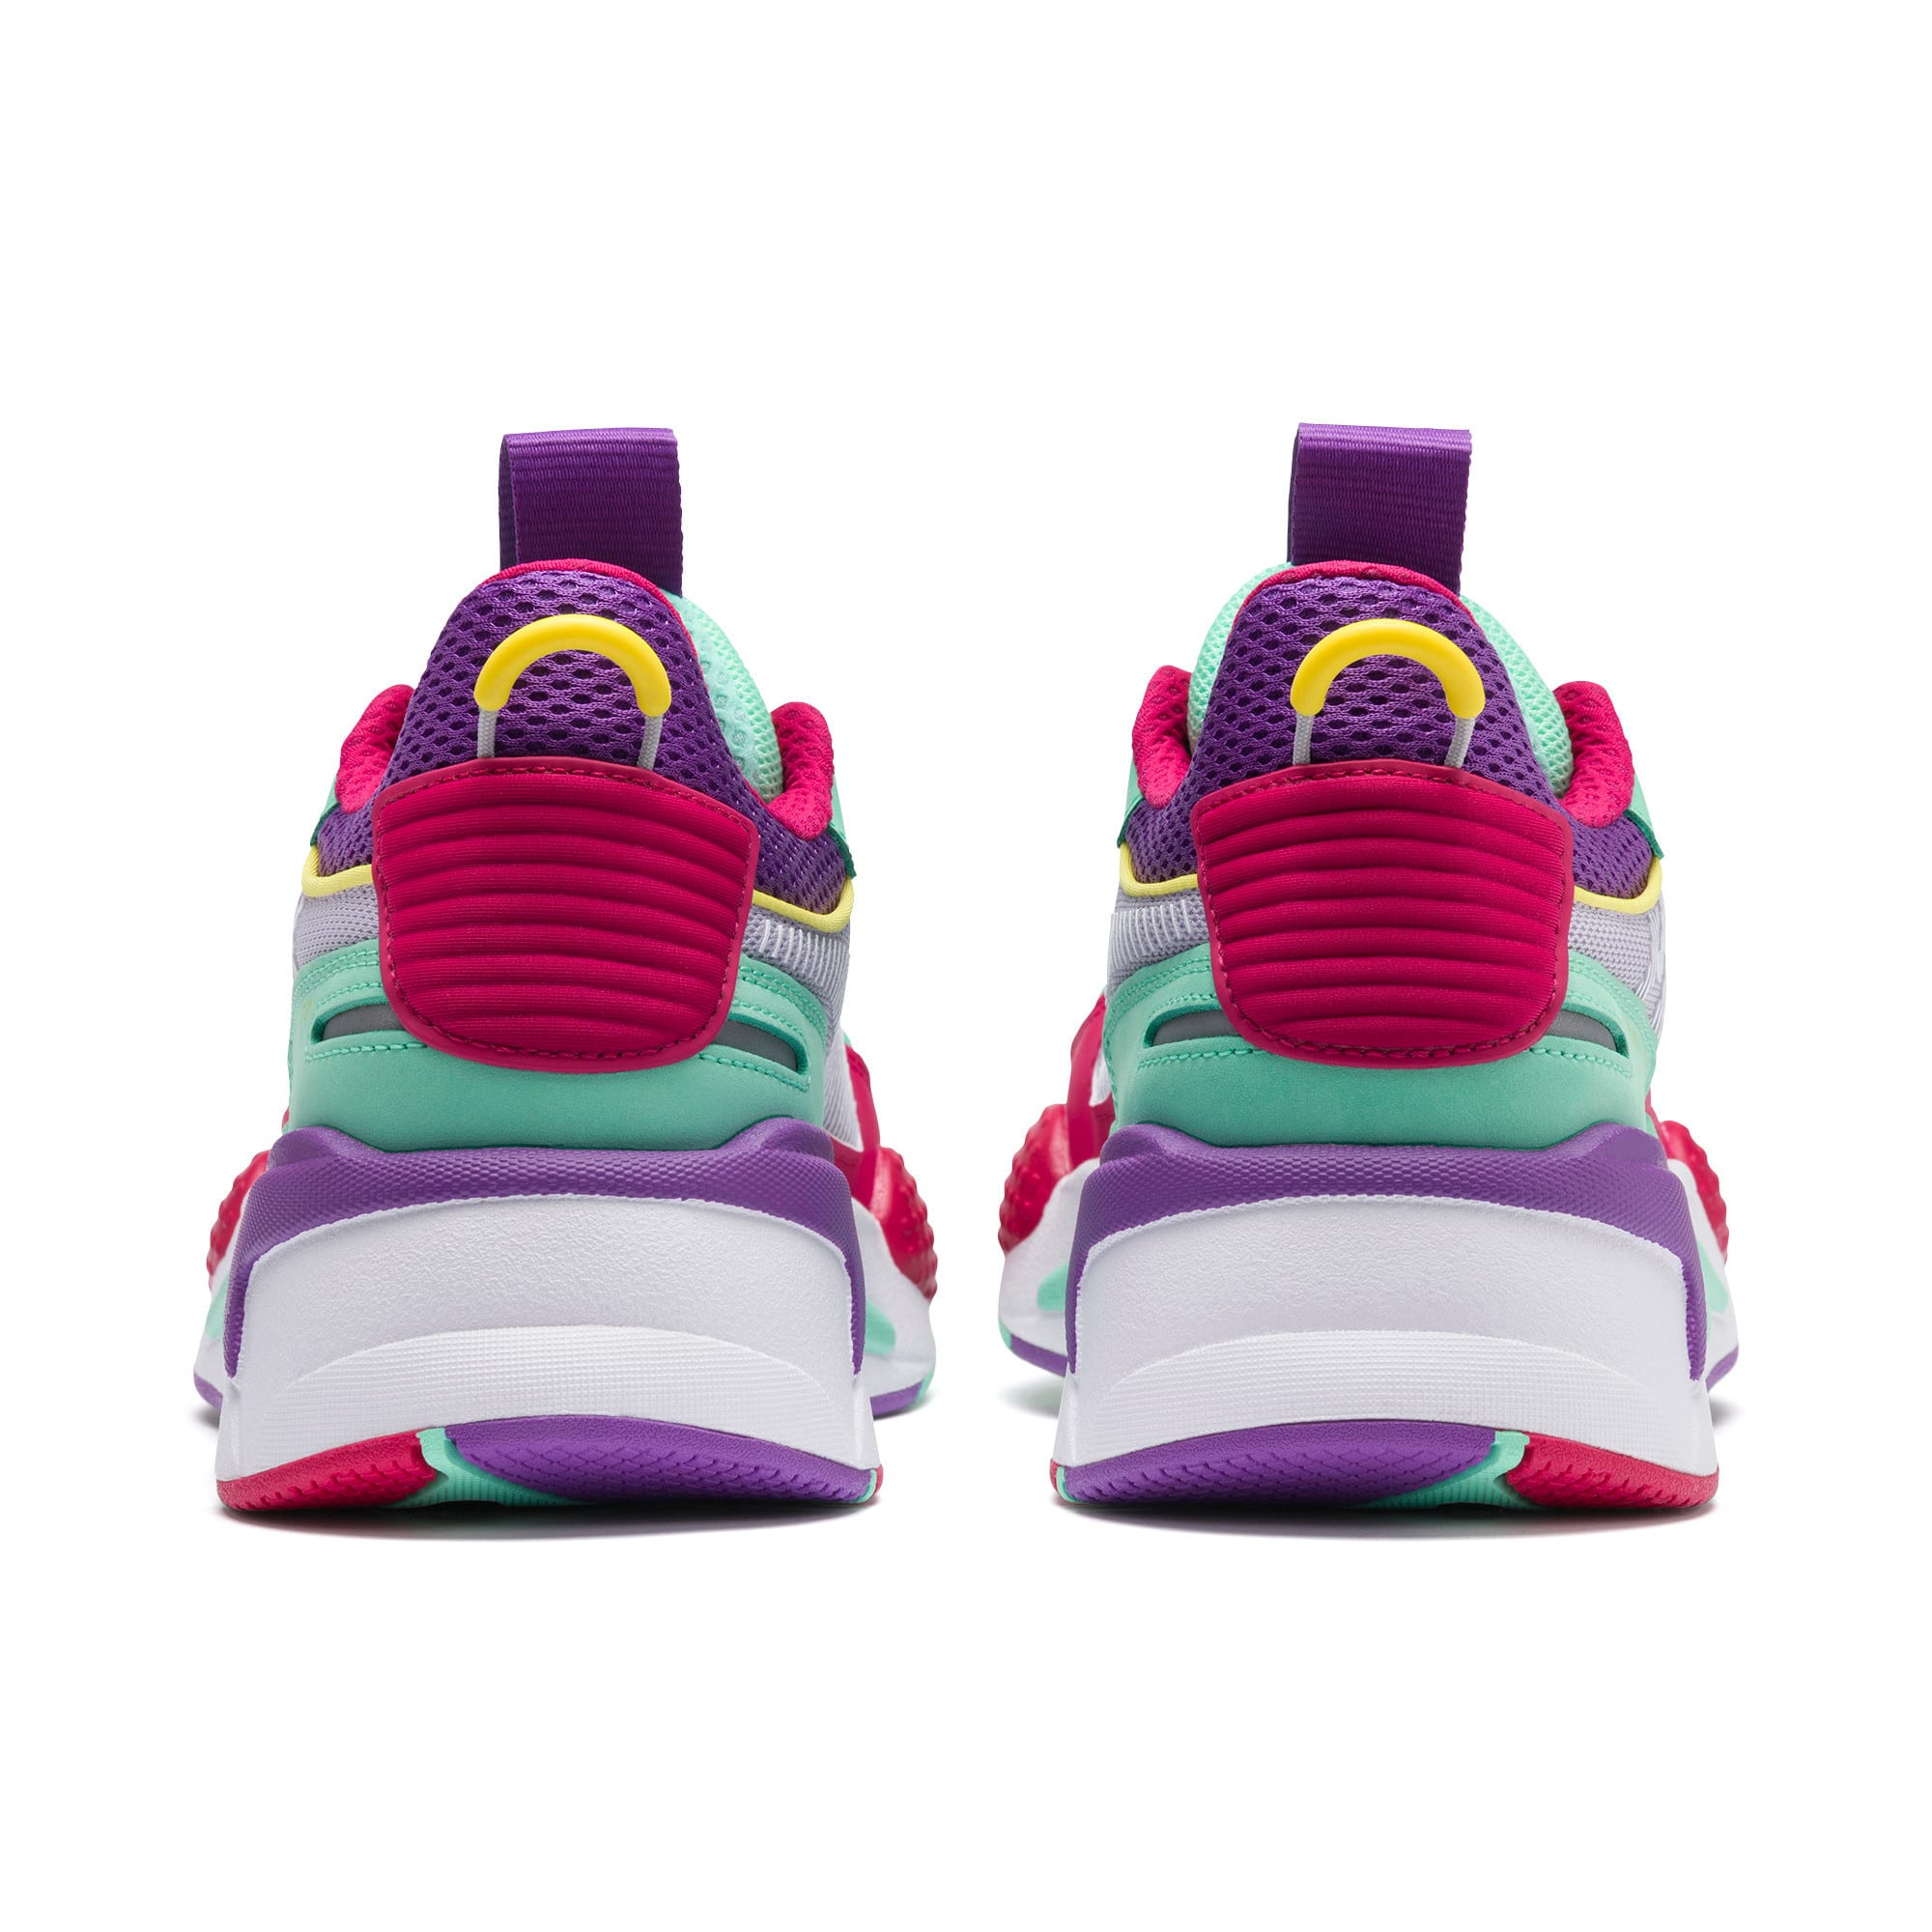 Thumbnail 3 of RS-X Bold Trainers, PurHeather-GrGlimmer-LPotion, medium